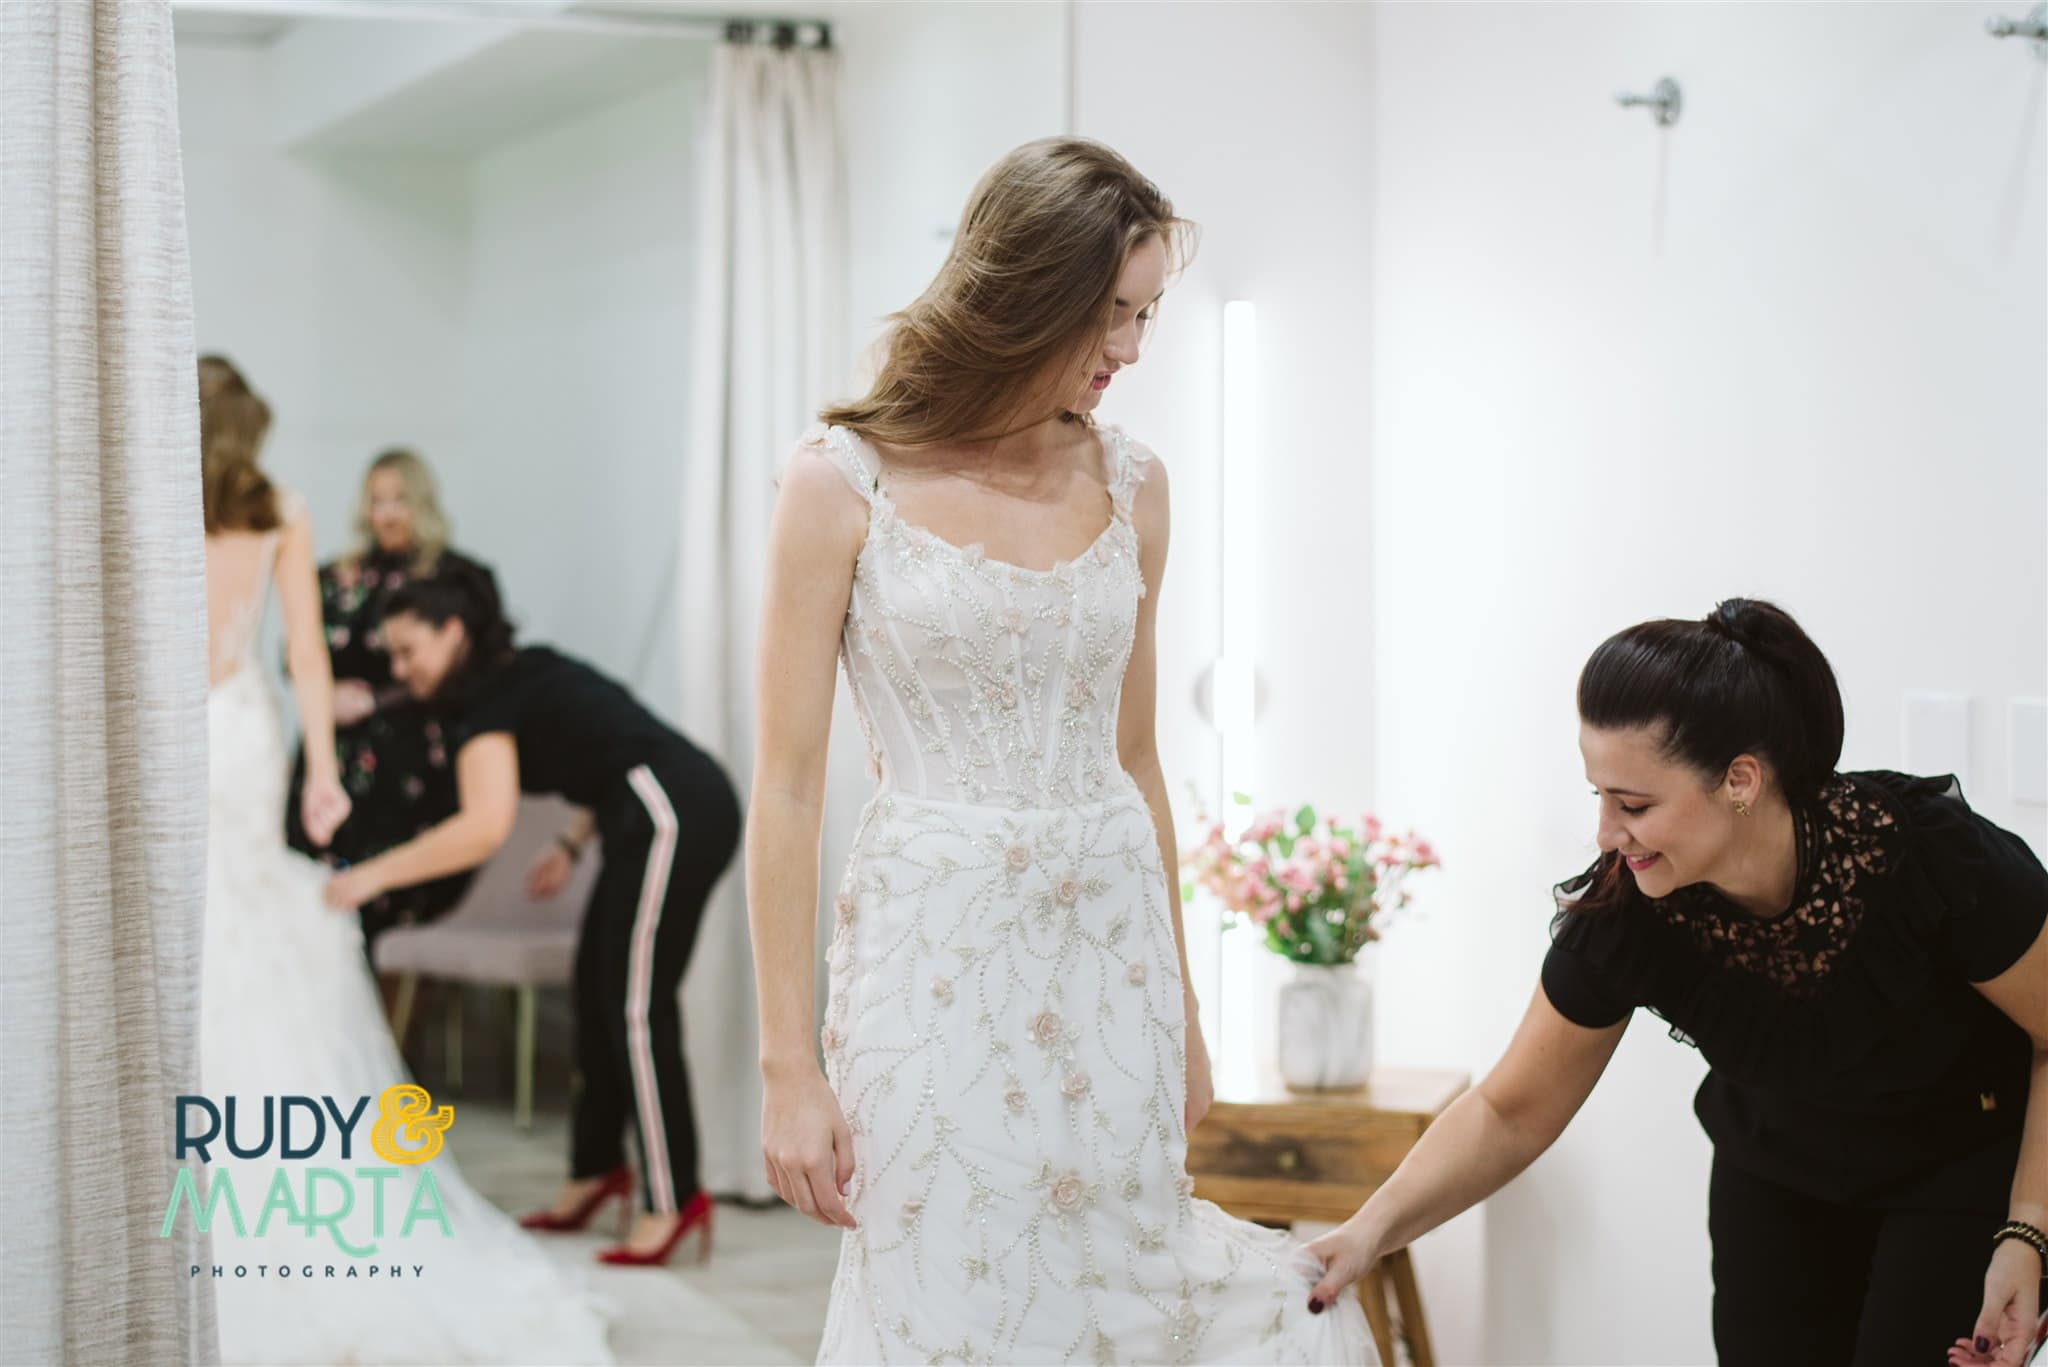 Questions for Wedding Dress Shoppingbeing answered at the bridal finery